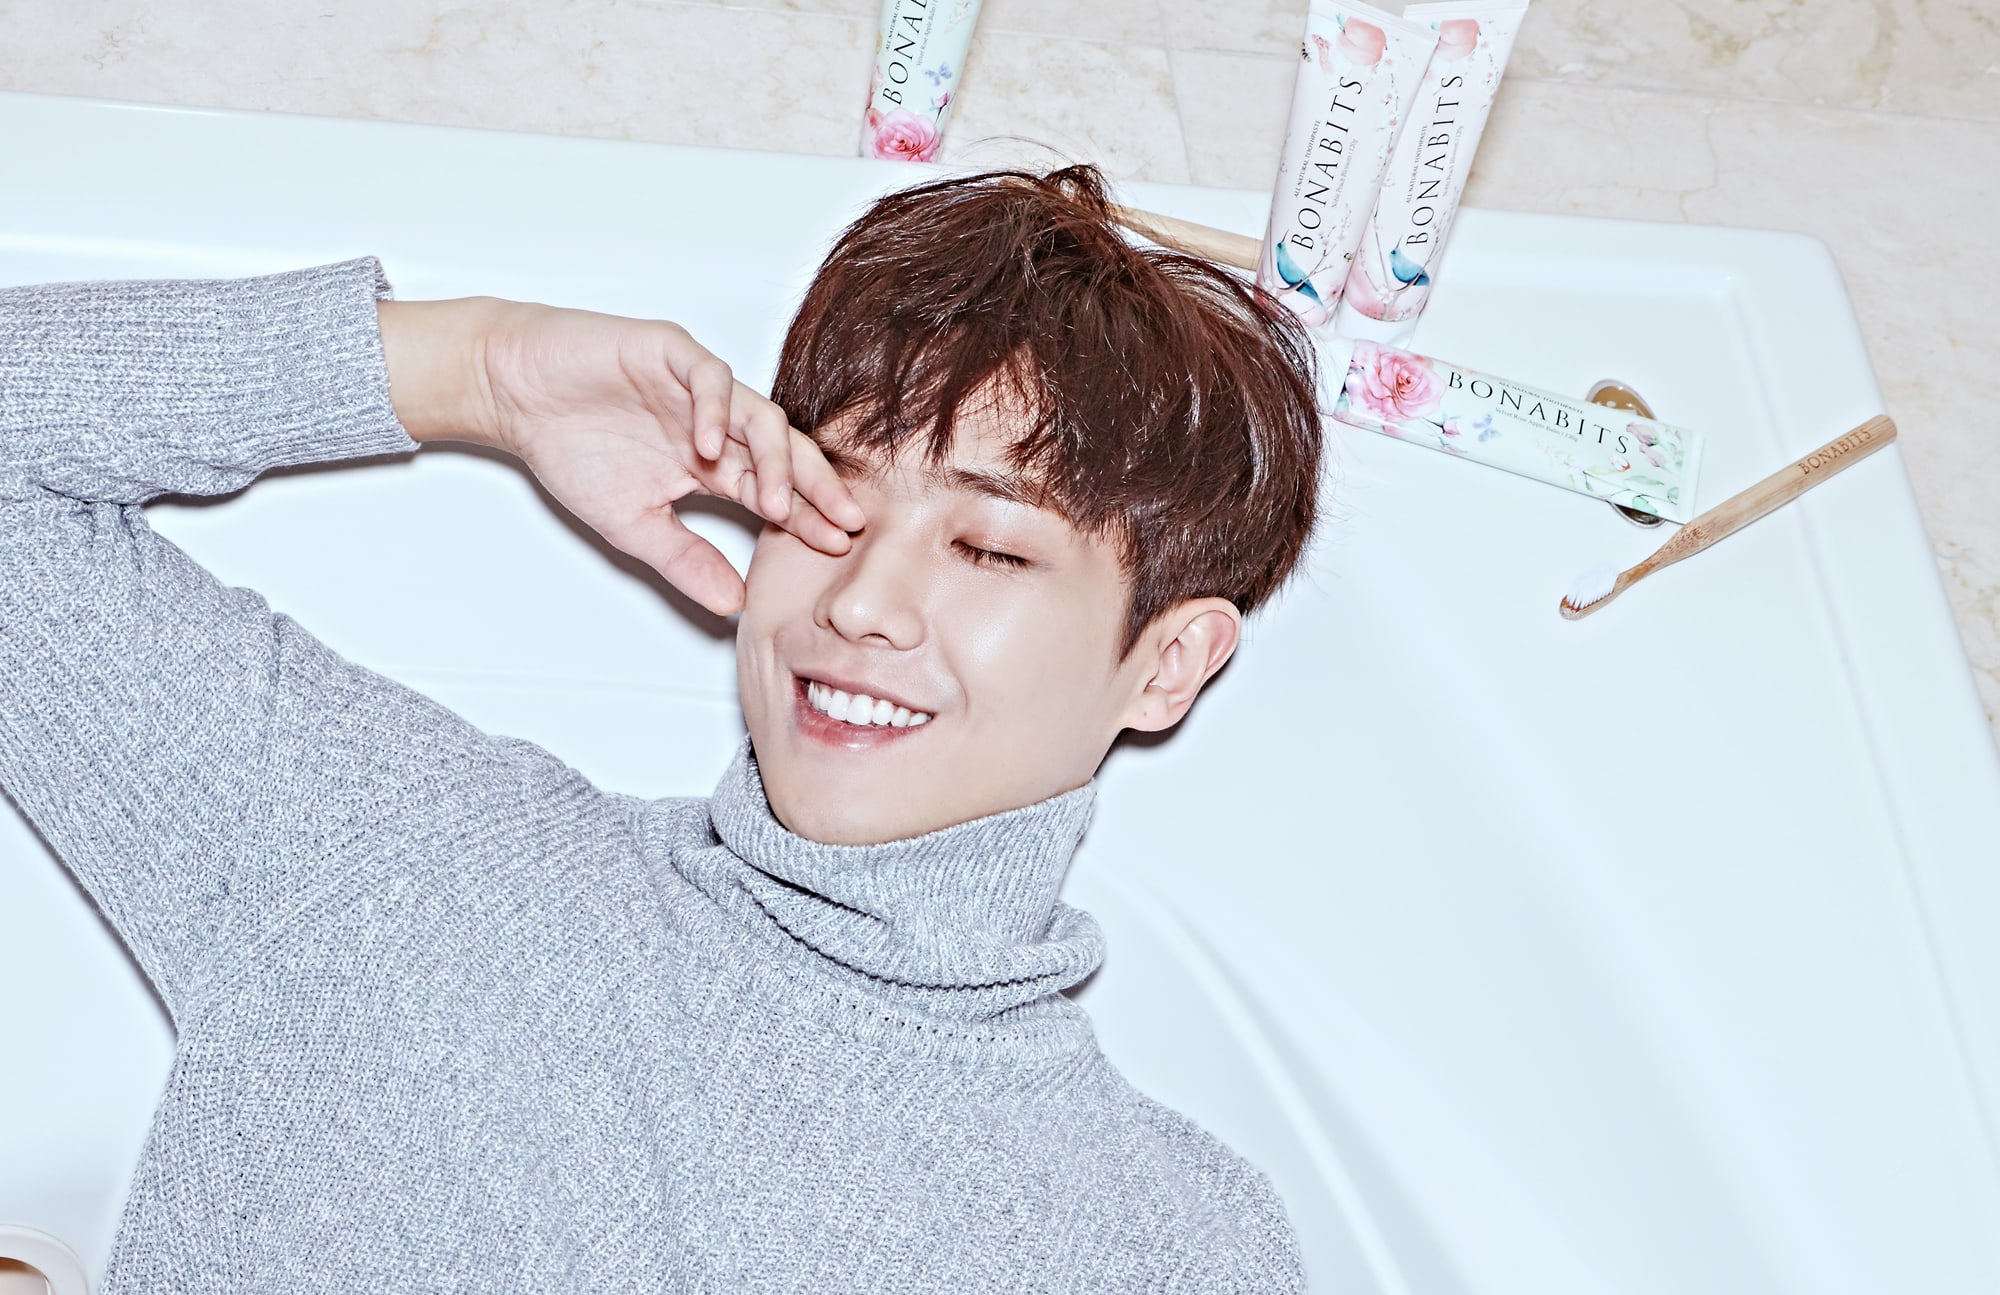 Lee Joon Donates Generous Amount To Comfort Women